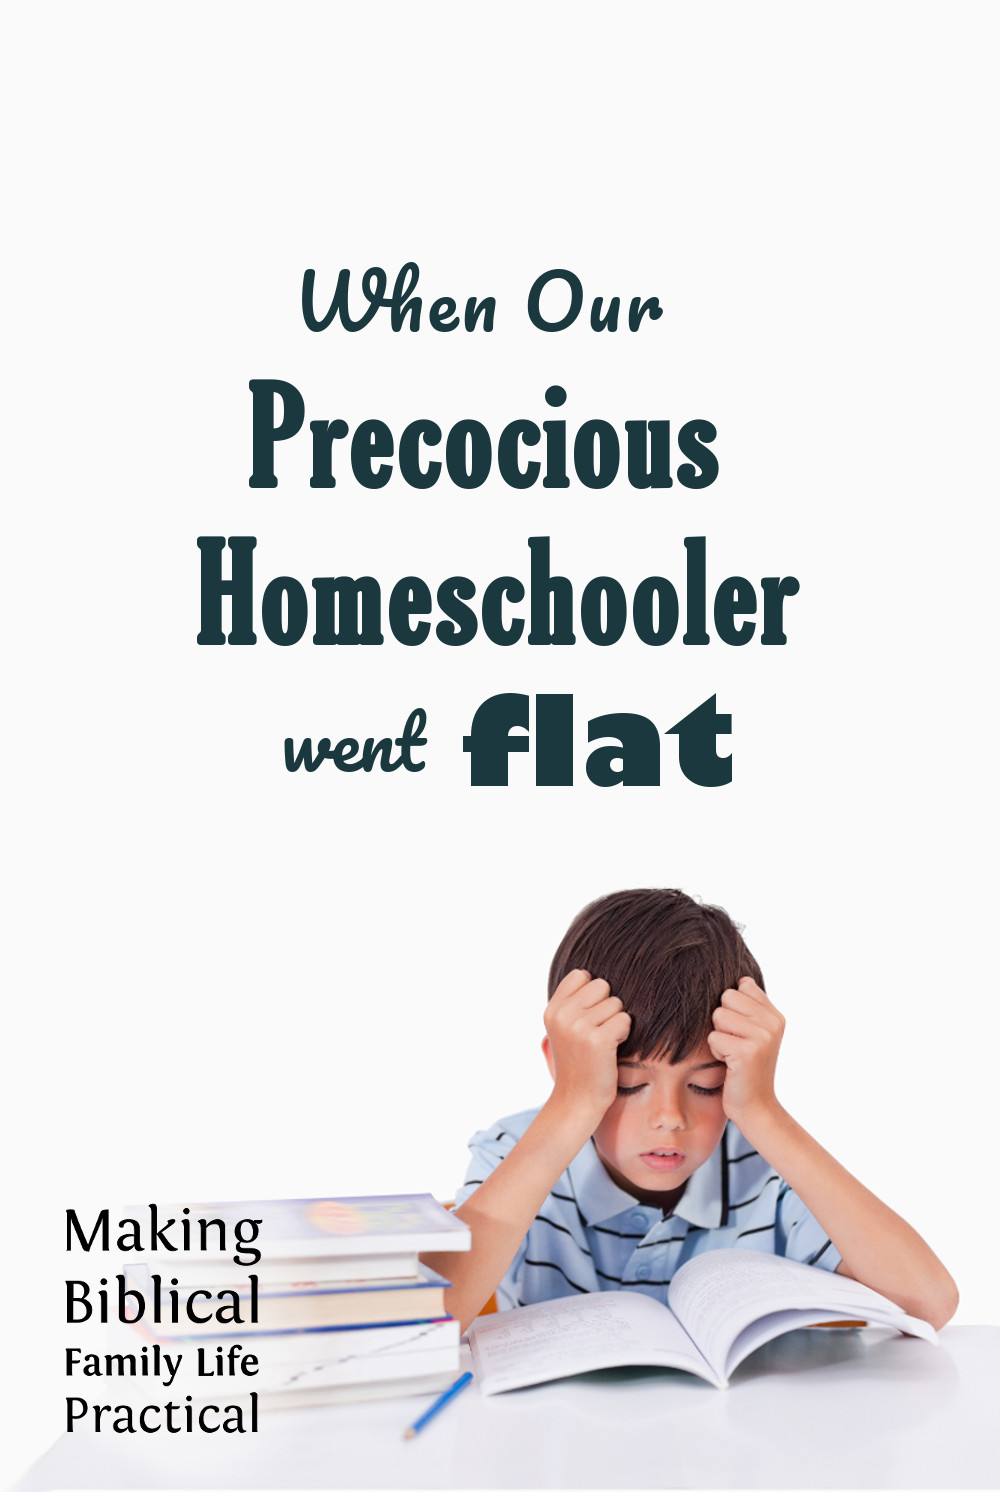 When Our Precocious Homeschooler Went Flat with Hal and Melanie Young from Making Biblical Family Life Practical